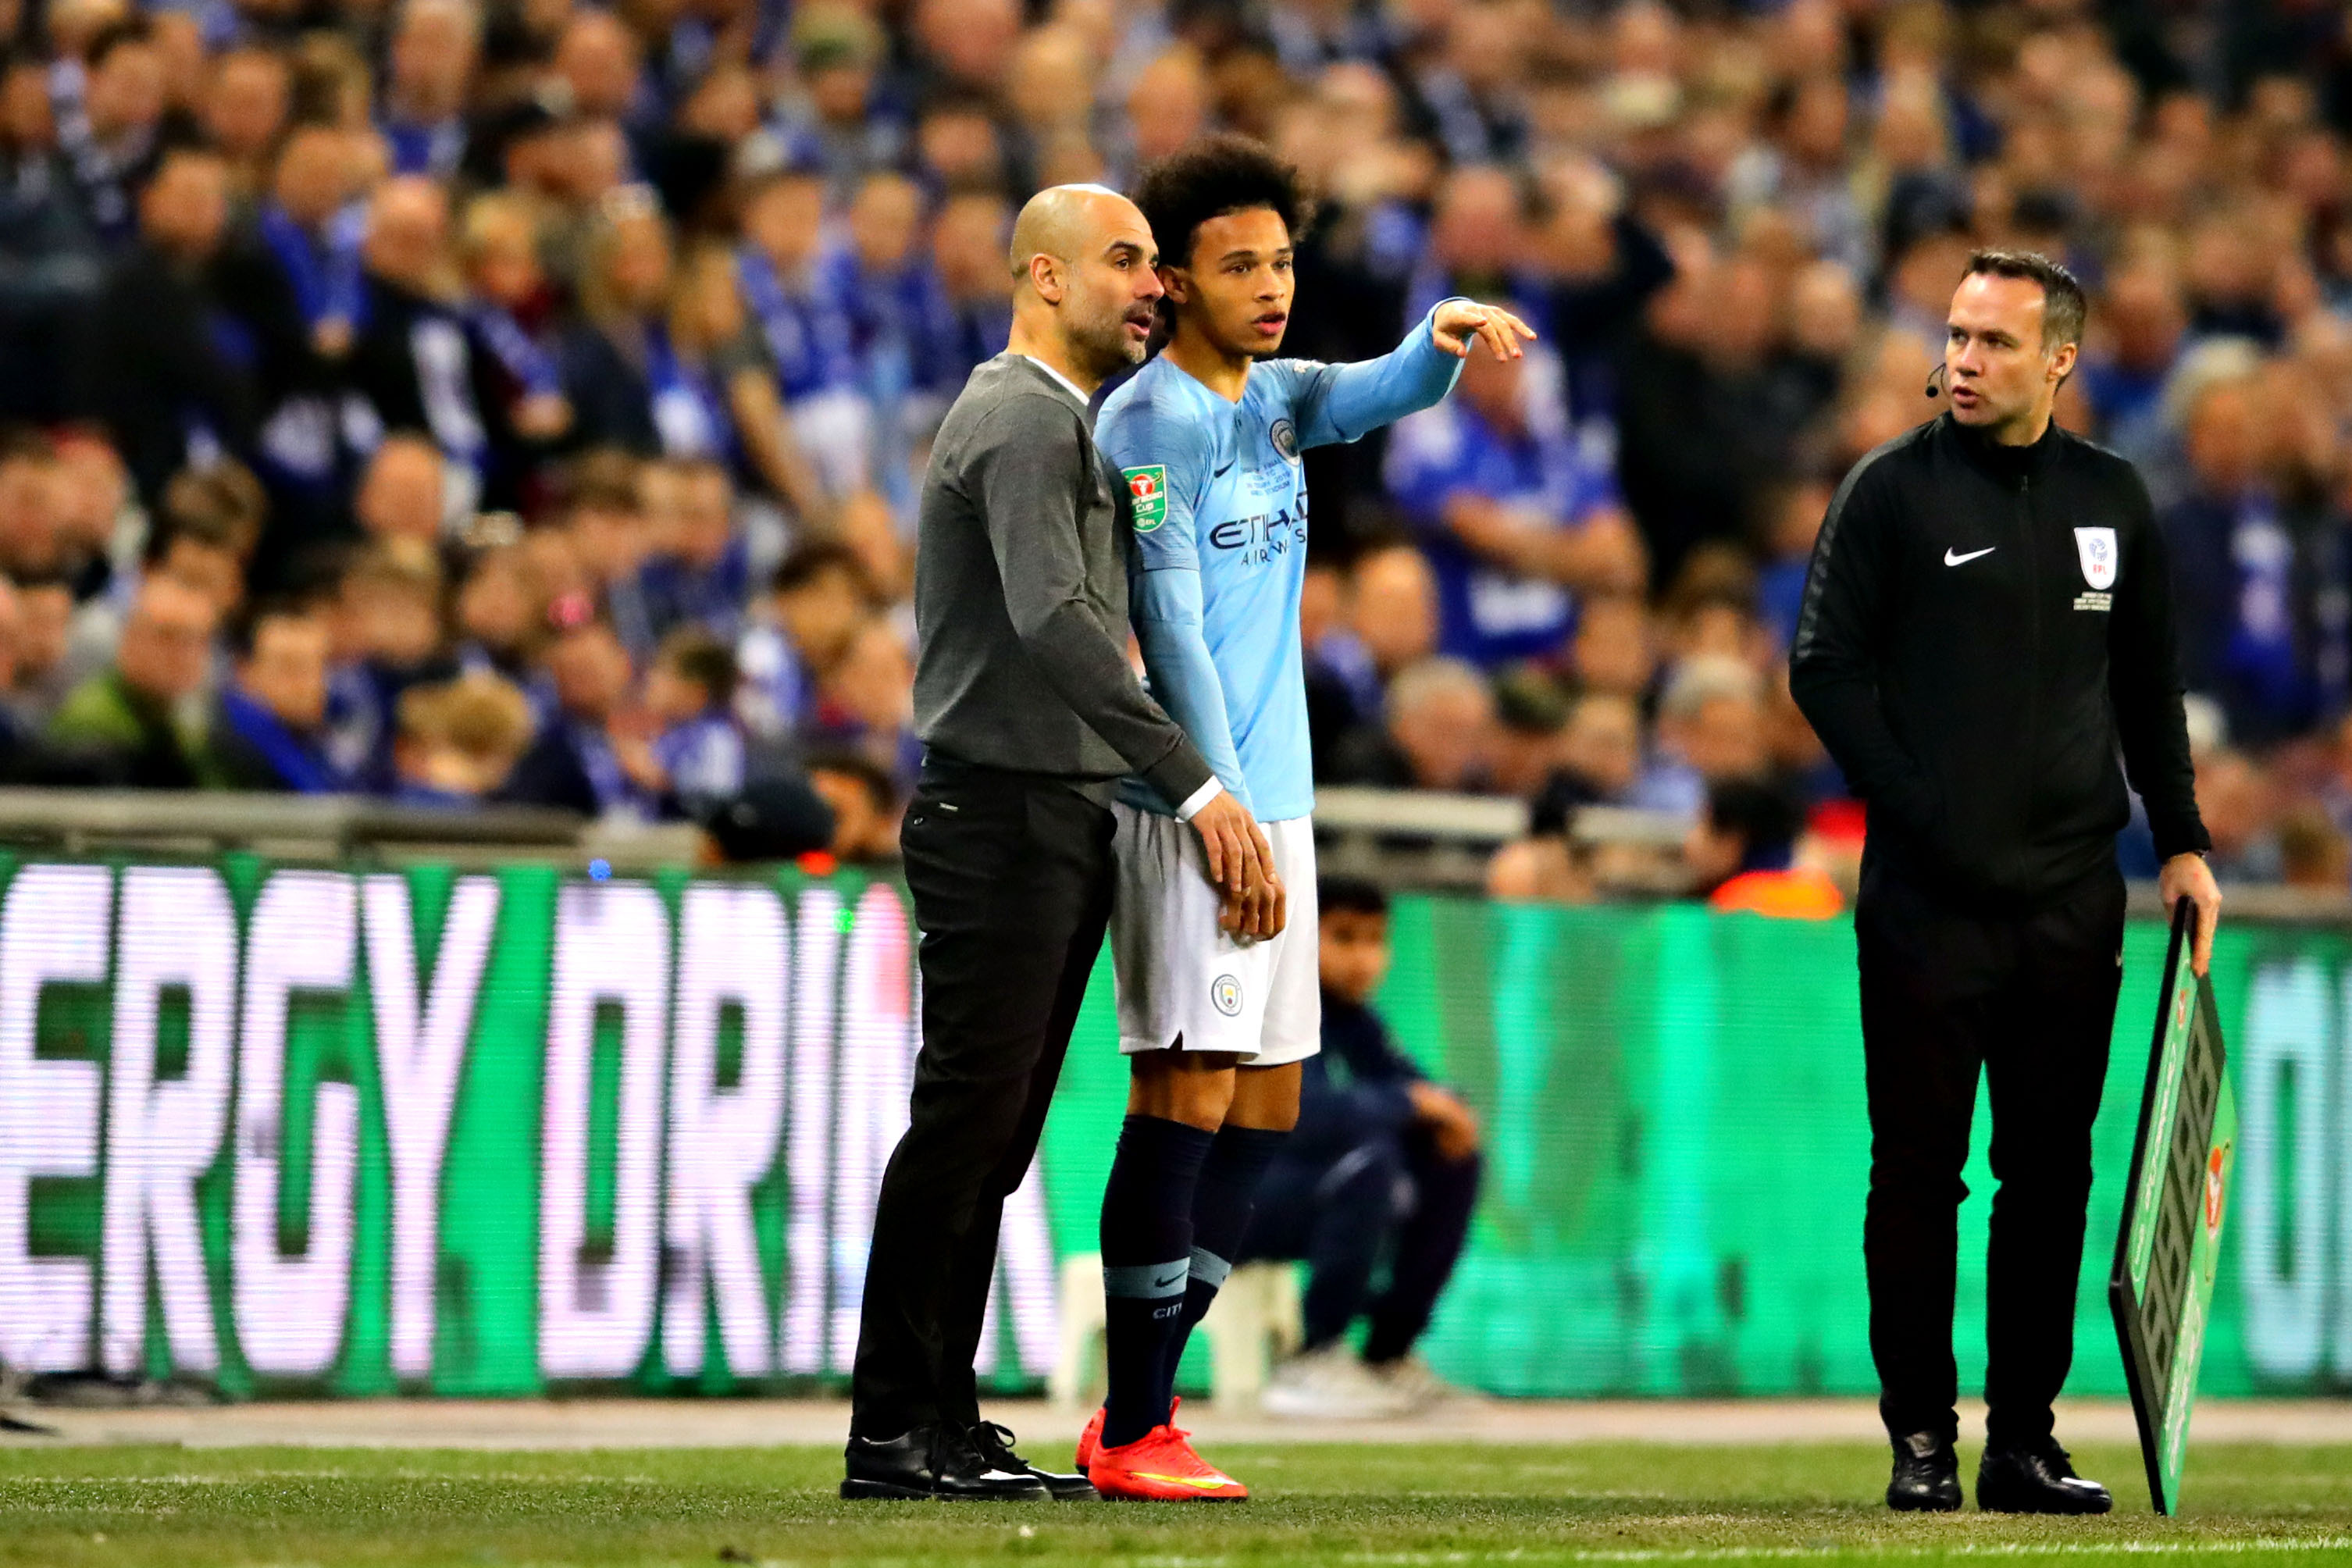 Pep Guardiola: Manchester City 'Trying' to Agree to New